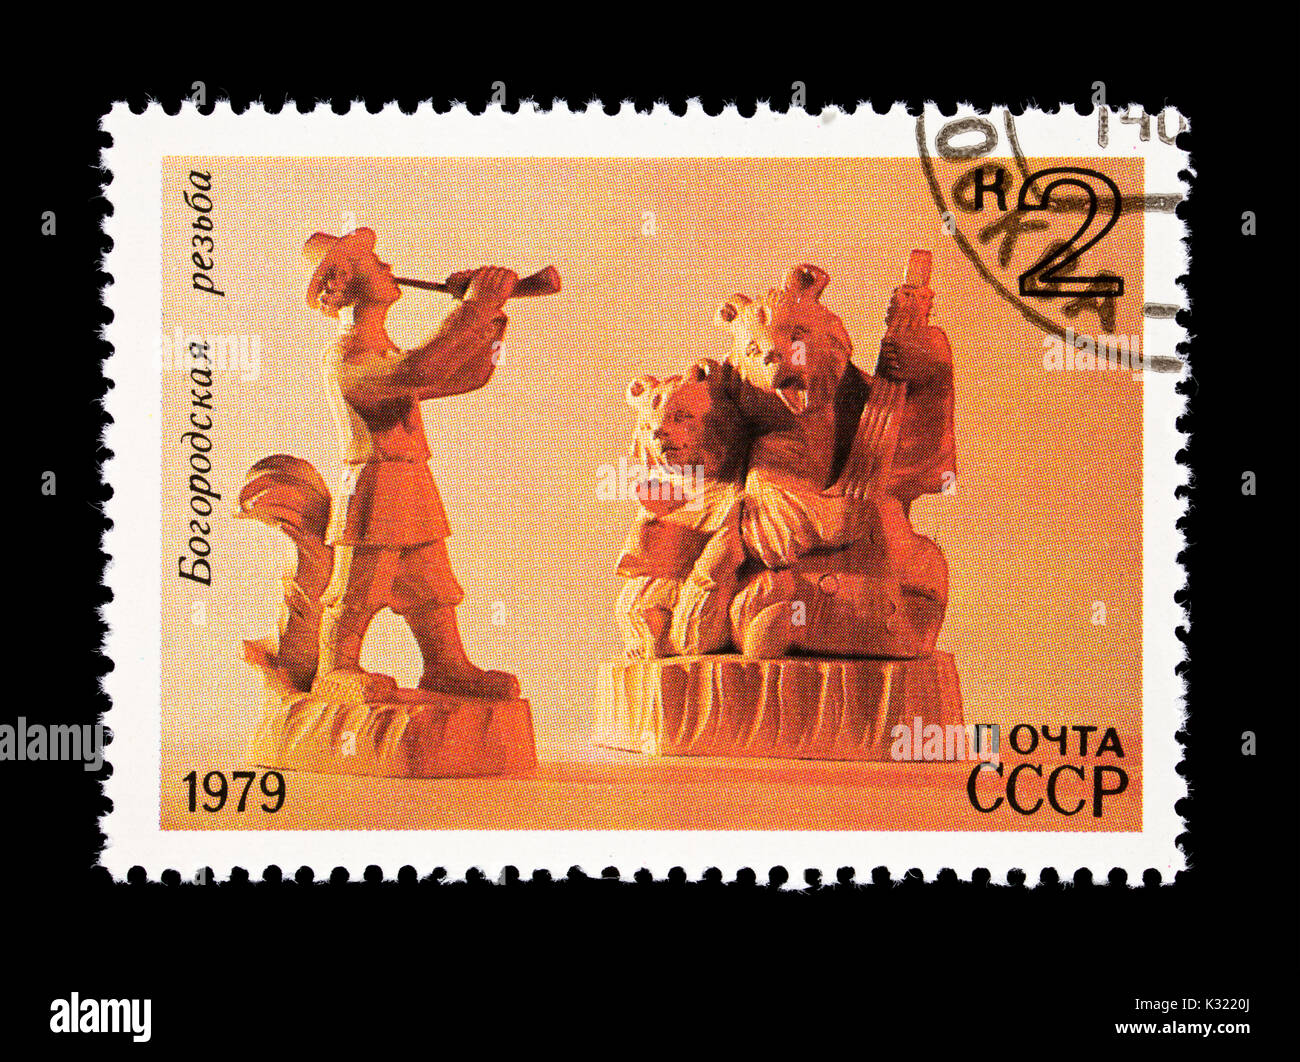 Postage stamp from the Soviet Union depicting a horn player and bear playing balalaika, examples of Bogorodsk wood - Stock Image